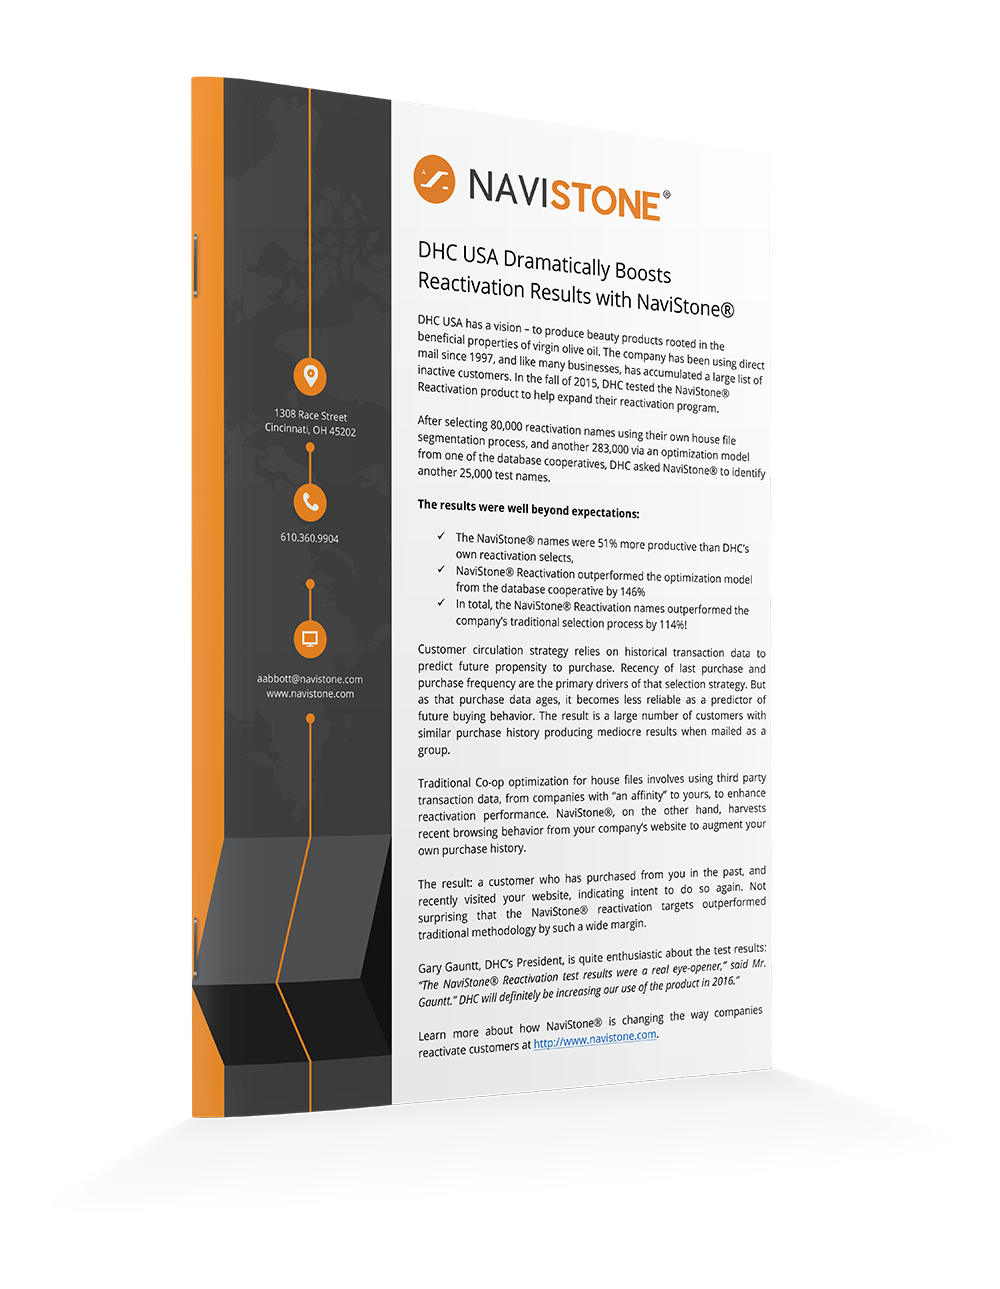 DHC USA Dramatically Boosts Reactivation Results with NaviStone®